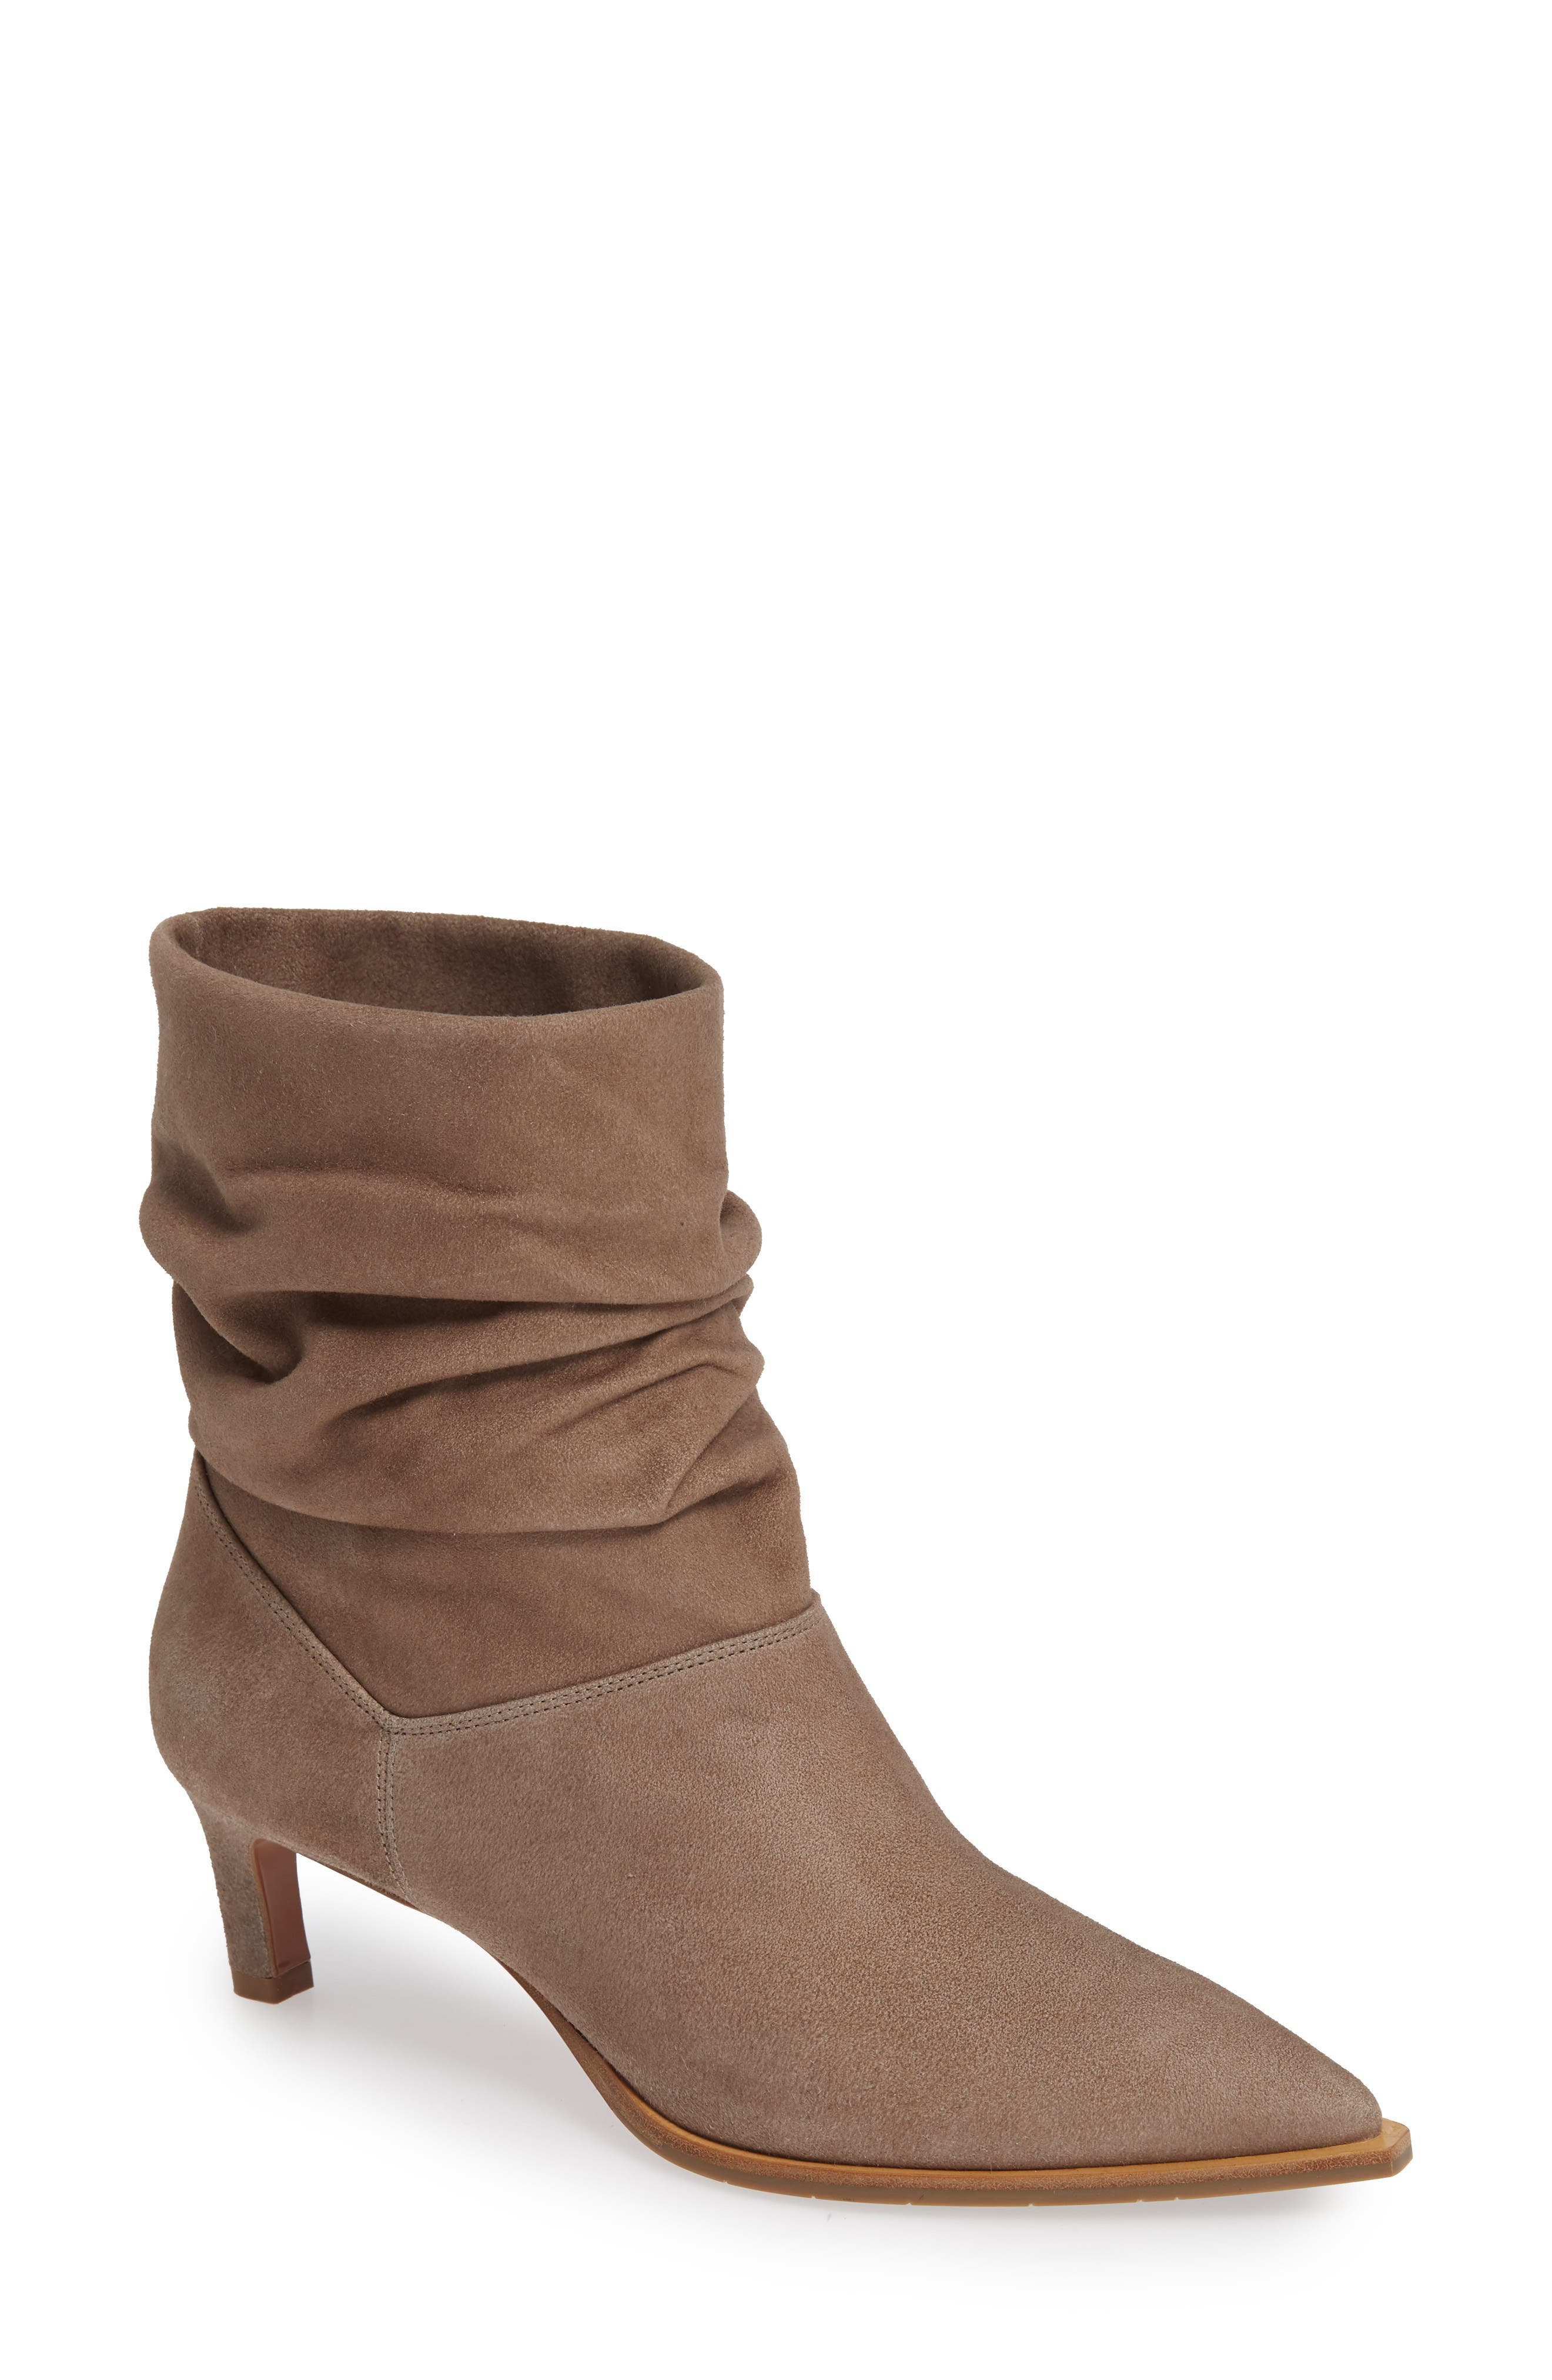 Aquatalia Maddy Water Resistant Slouch Boot, Beige